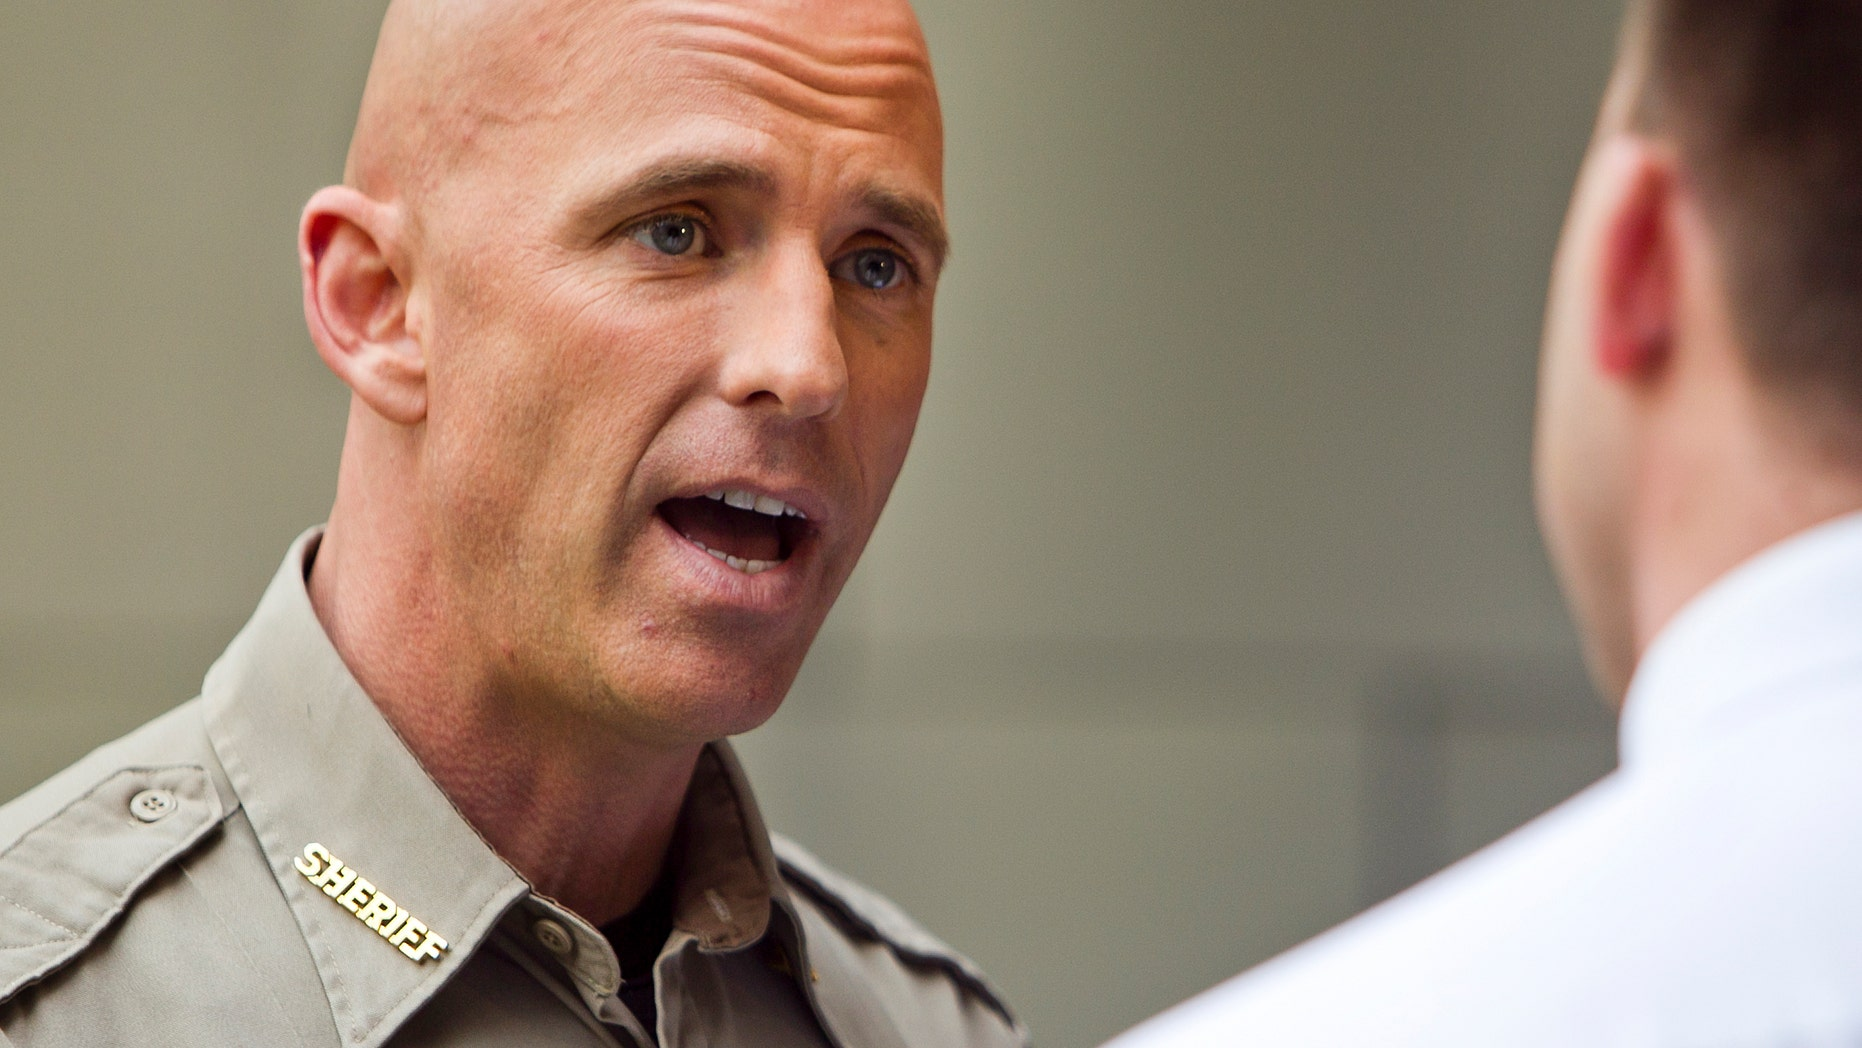 Pinal County Sheriff Sheriff Paul Babeu, left, is interviewed by KPNX reporter William Pitts at the Mesa Arts Center, Monday, Feb. 12, 2012 in Mesa, Ariz. (AP Photo/The Arizona Republic, Tom Tingle)